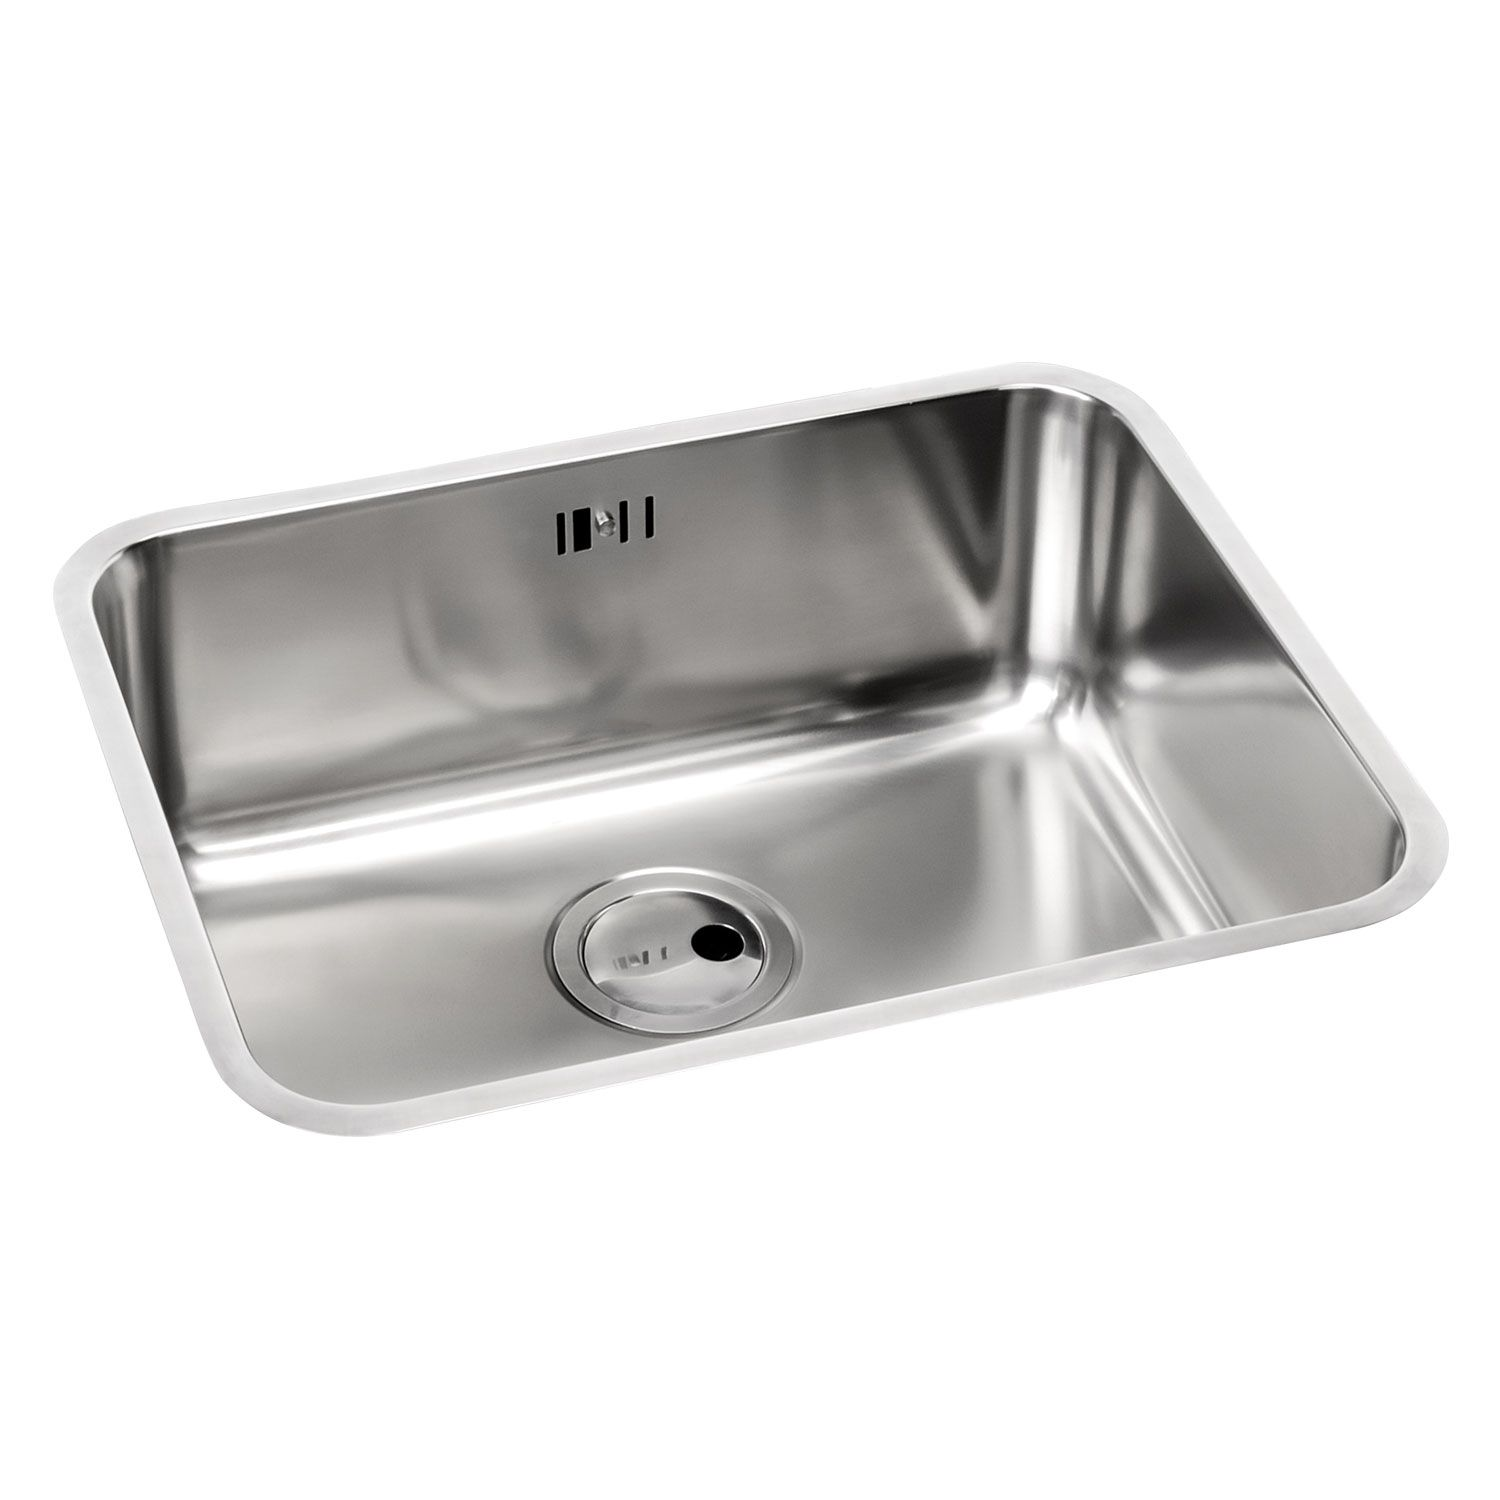 Large Kitchen Sinks Undermount : Matrix R50 Large 1.0 Bowl Undermount Sink - Sinks-Taps.com